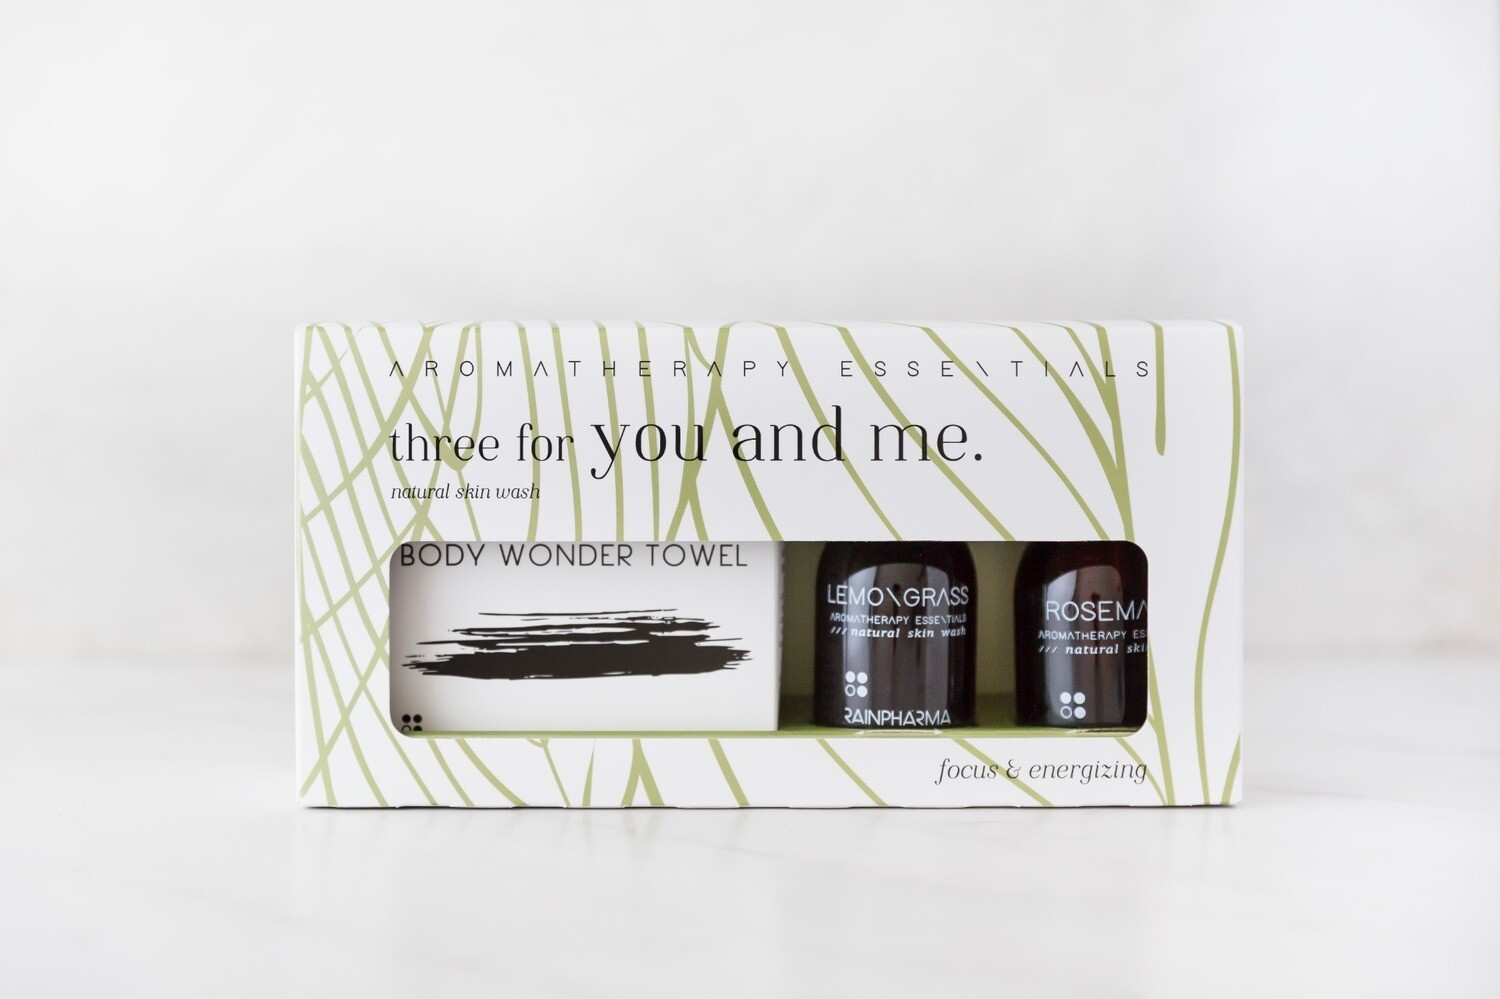 Three for you and me - Focus & Energizing - Rosemary/Lemongrass